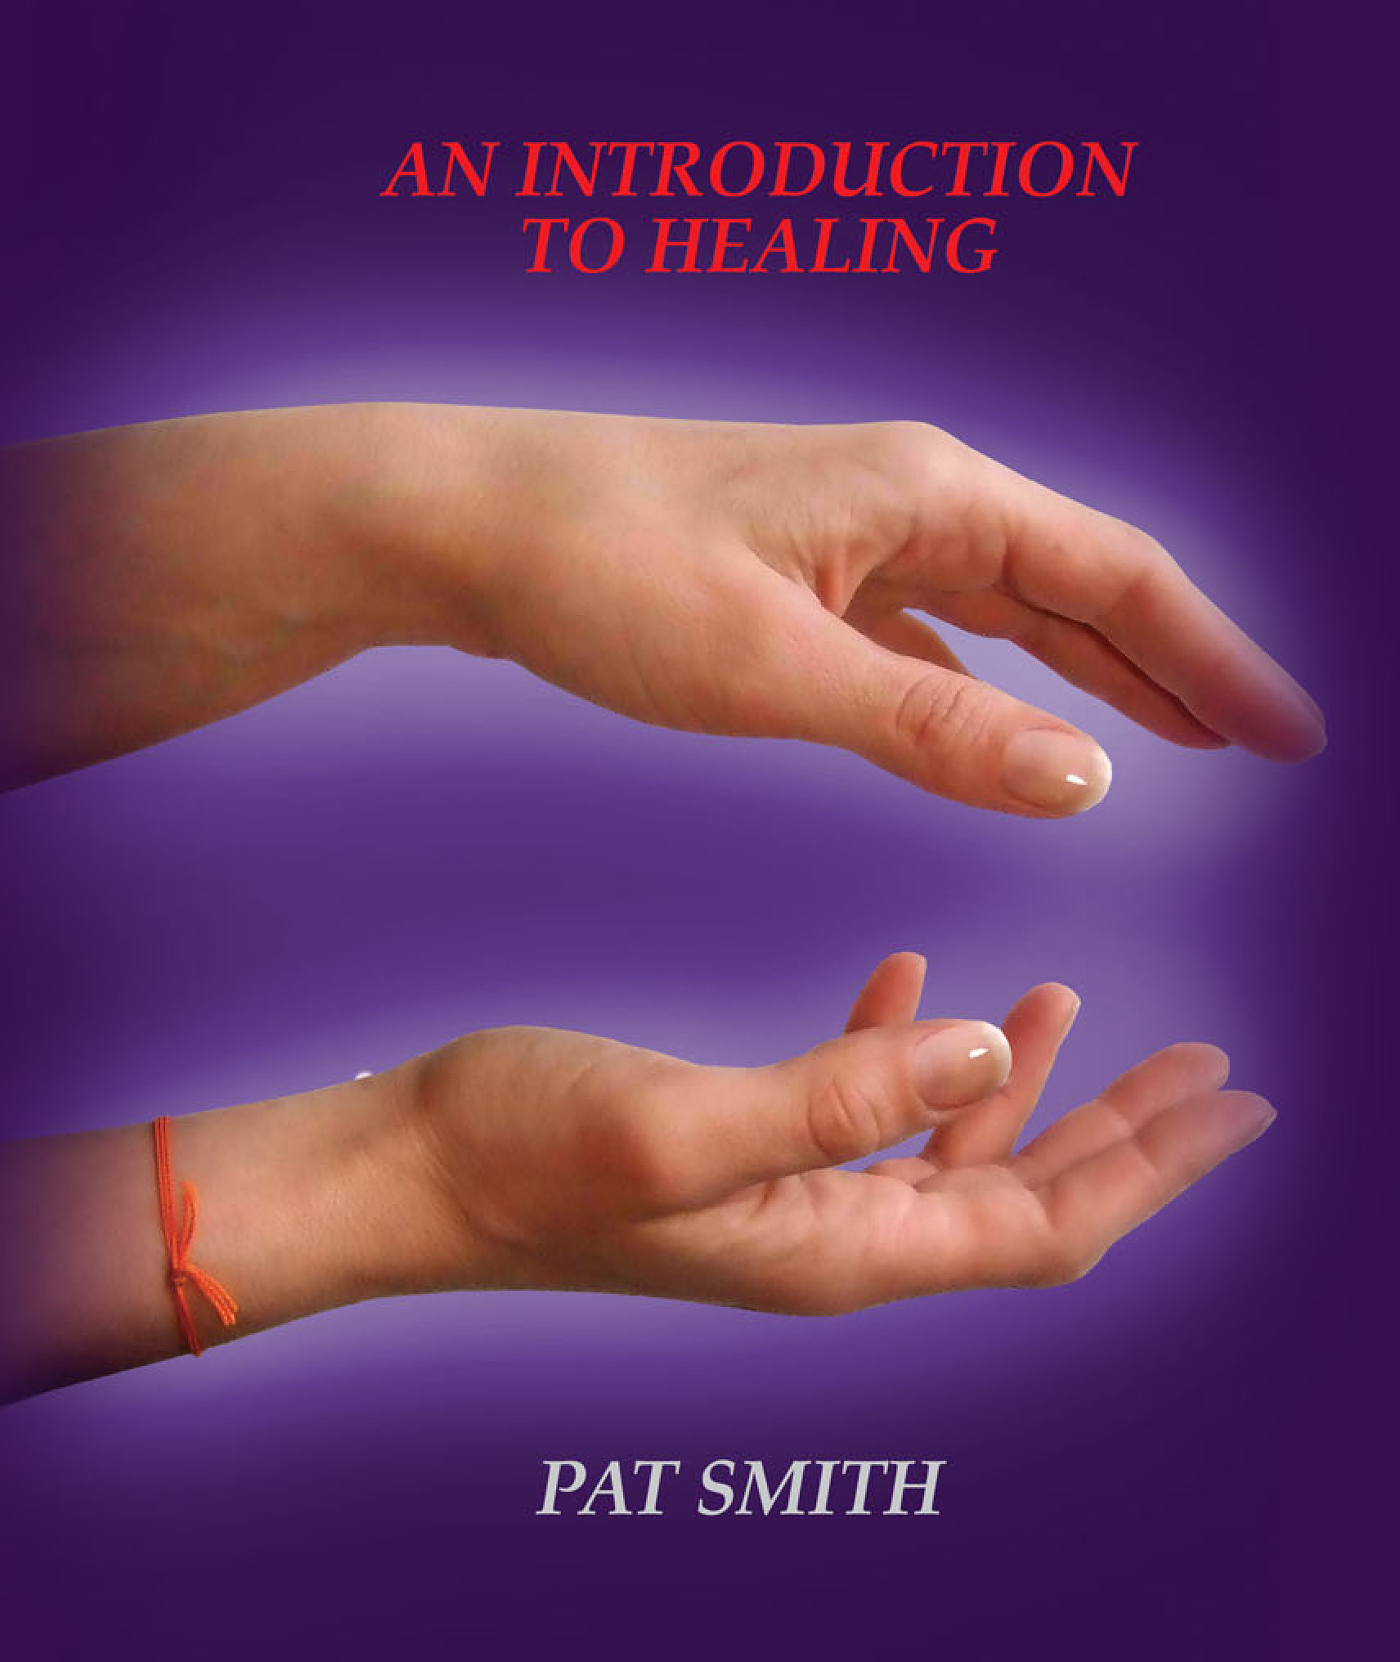 Pat Smith A Introduction to spiritual healing thomas augustin introduction to imprecise probabilities